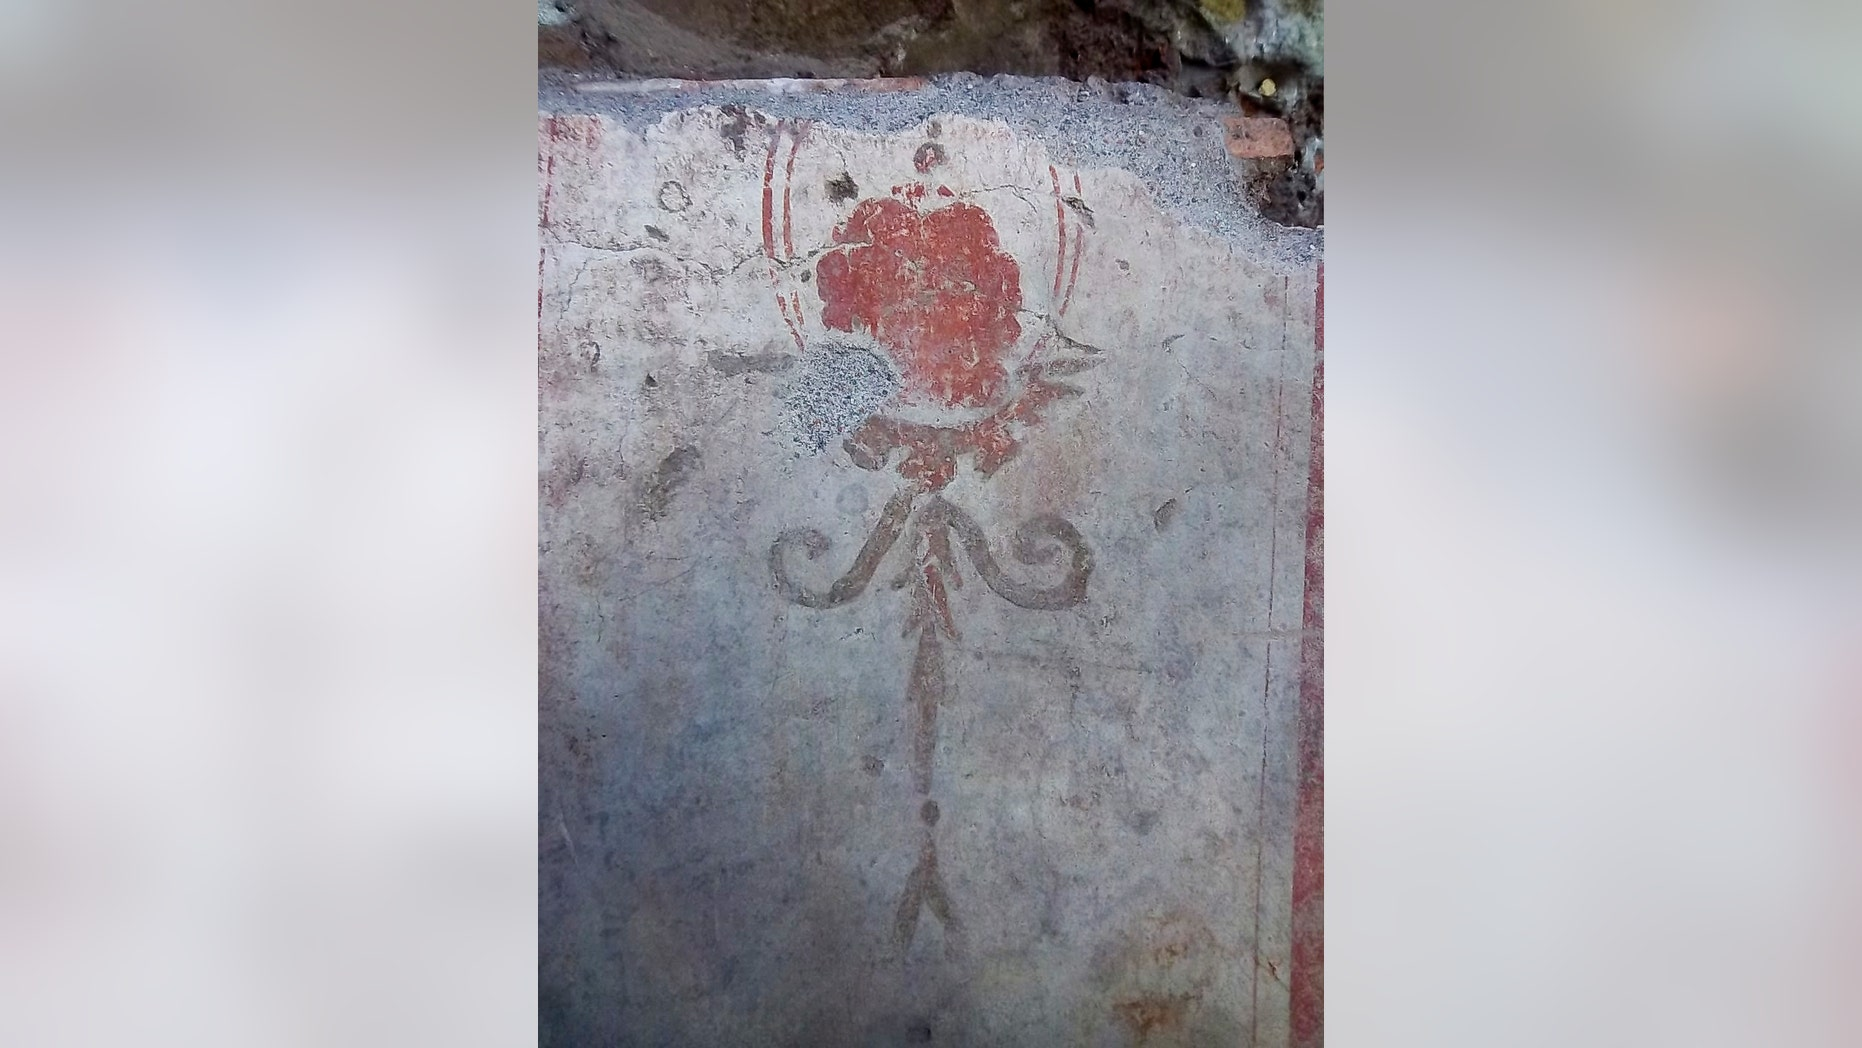 This photo made available Monday, June 26, 2017, by the Italian Culture Ministry, shows a frescoed wall segment, part of the charred ruins of a 3rd-century building that was unearthed while digging for Rome's new subway. The building was found on May 23 when examining the inside of a 10-meter (33-foot) deep hole bored into Rome near the ancient Aurelian Walls during construction work for the Metro C line. (Italian Culture Ministry Via AP)